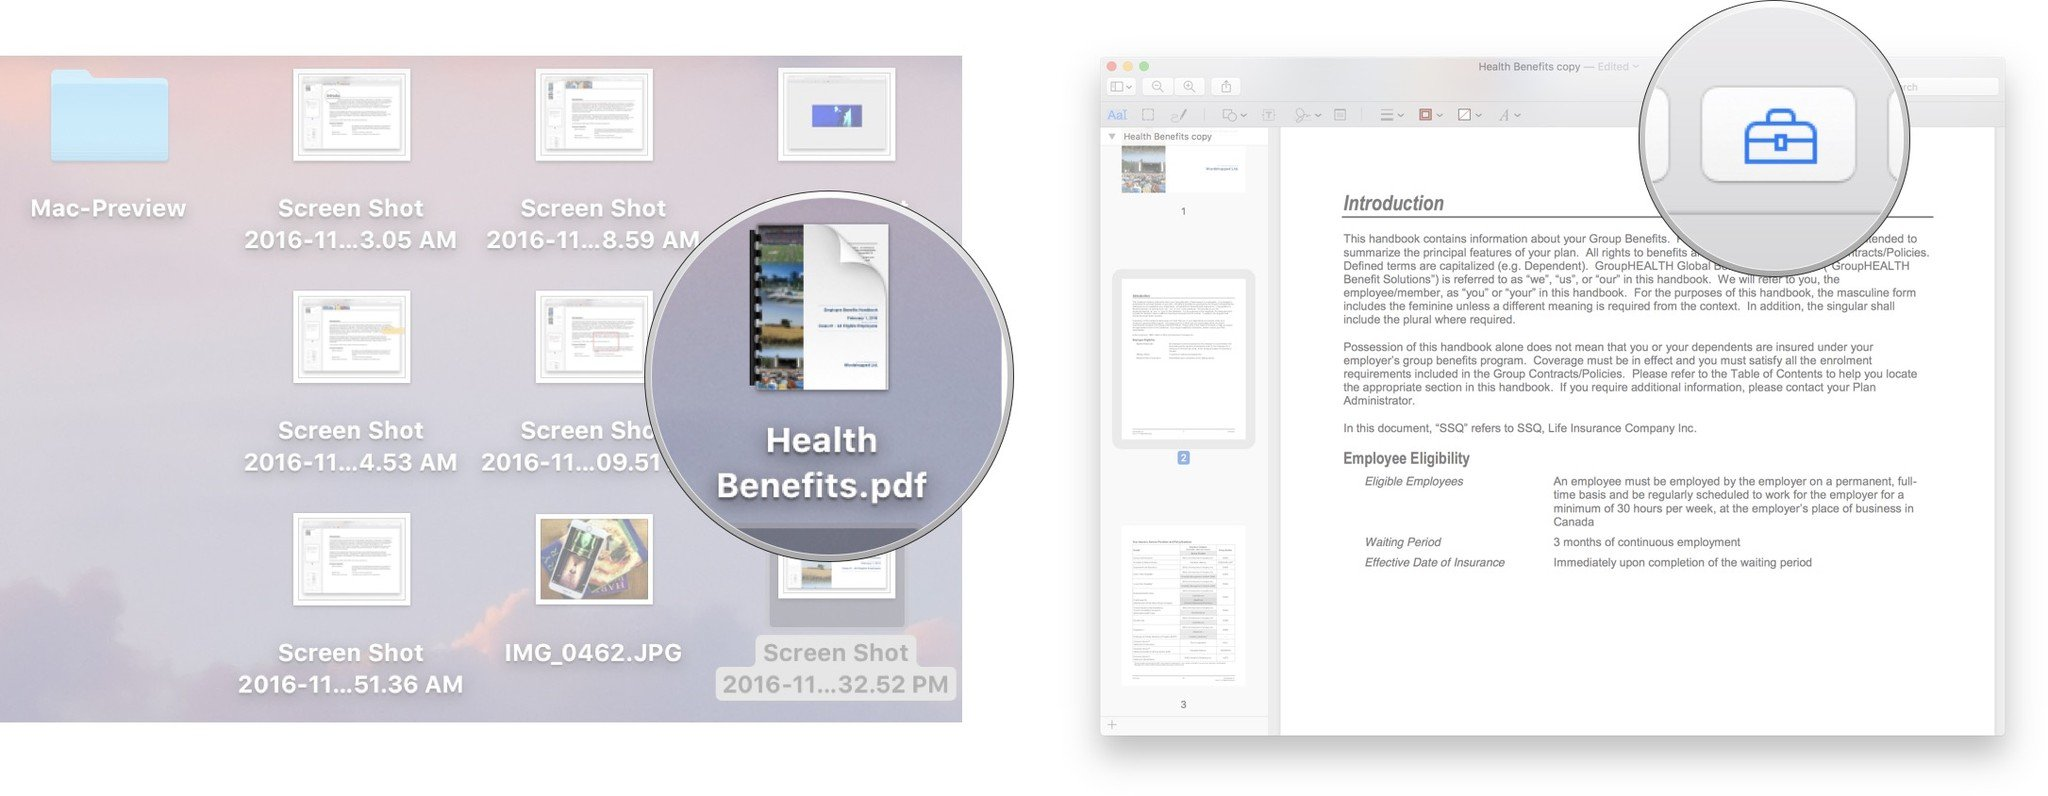 how to sign a document on mac